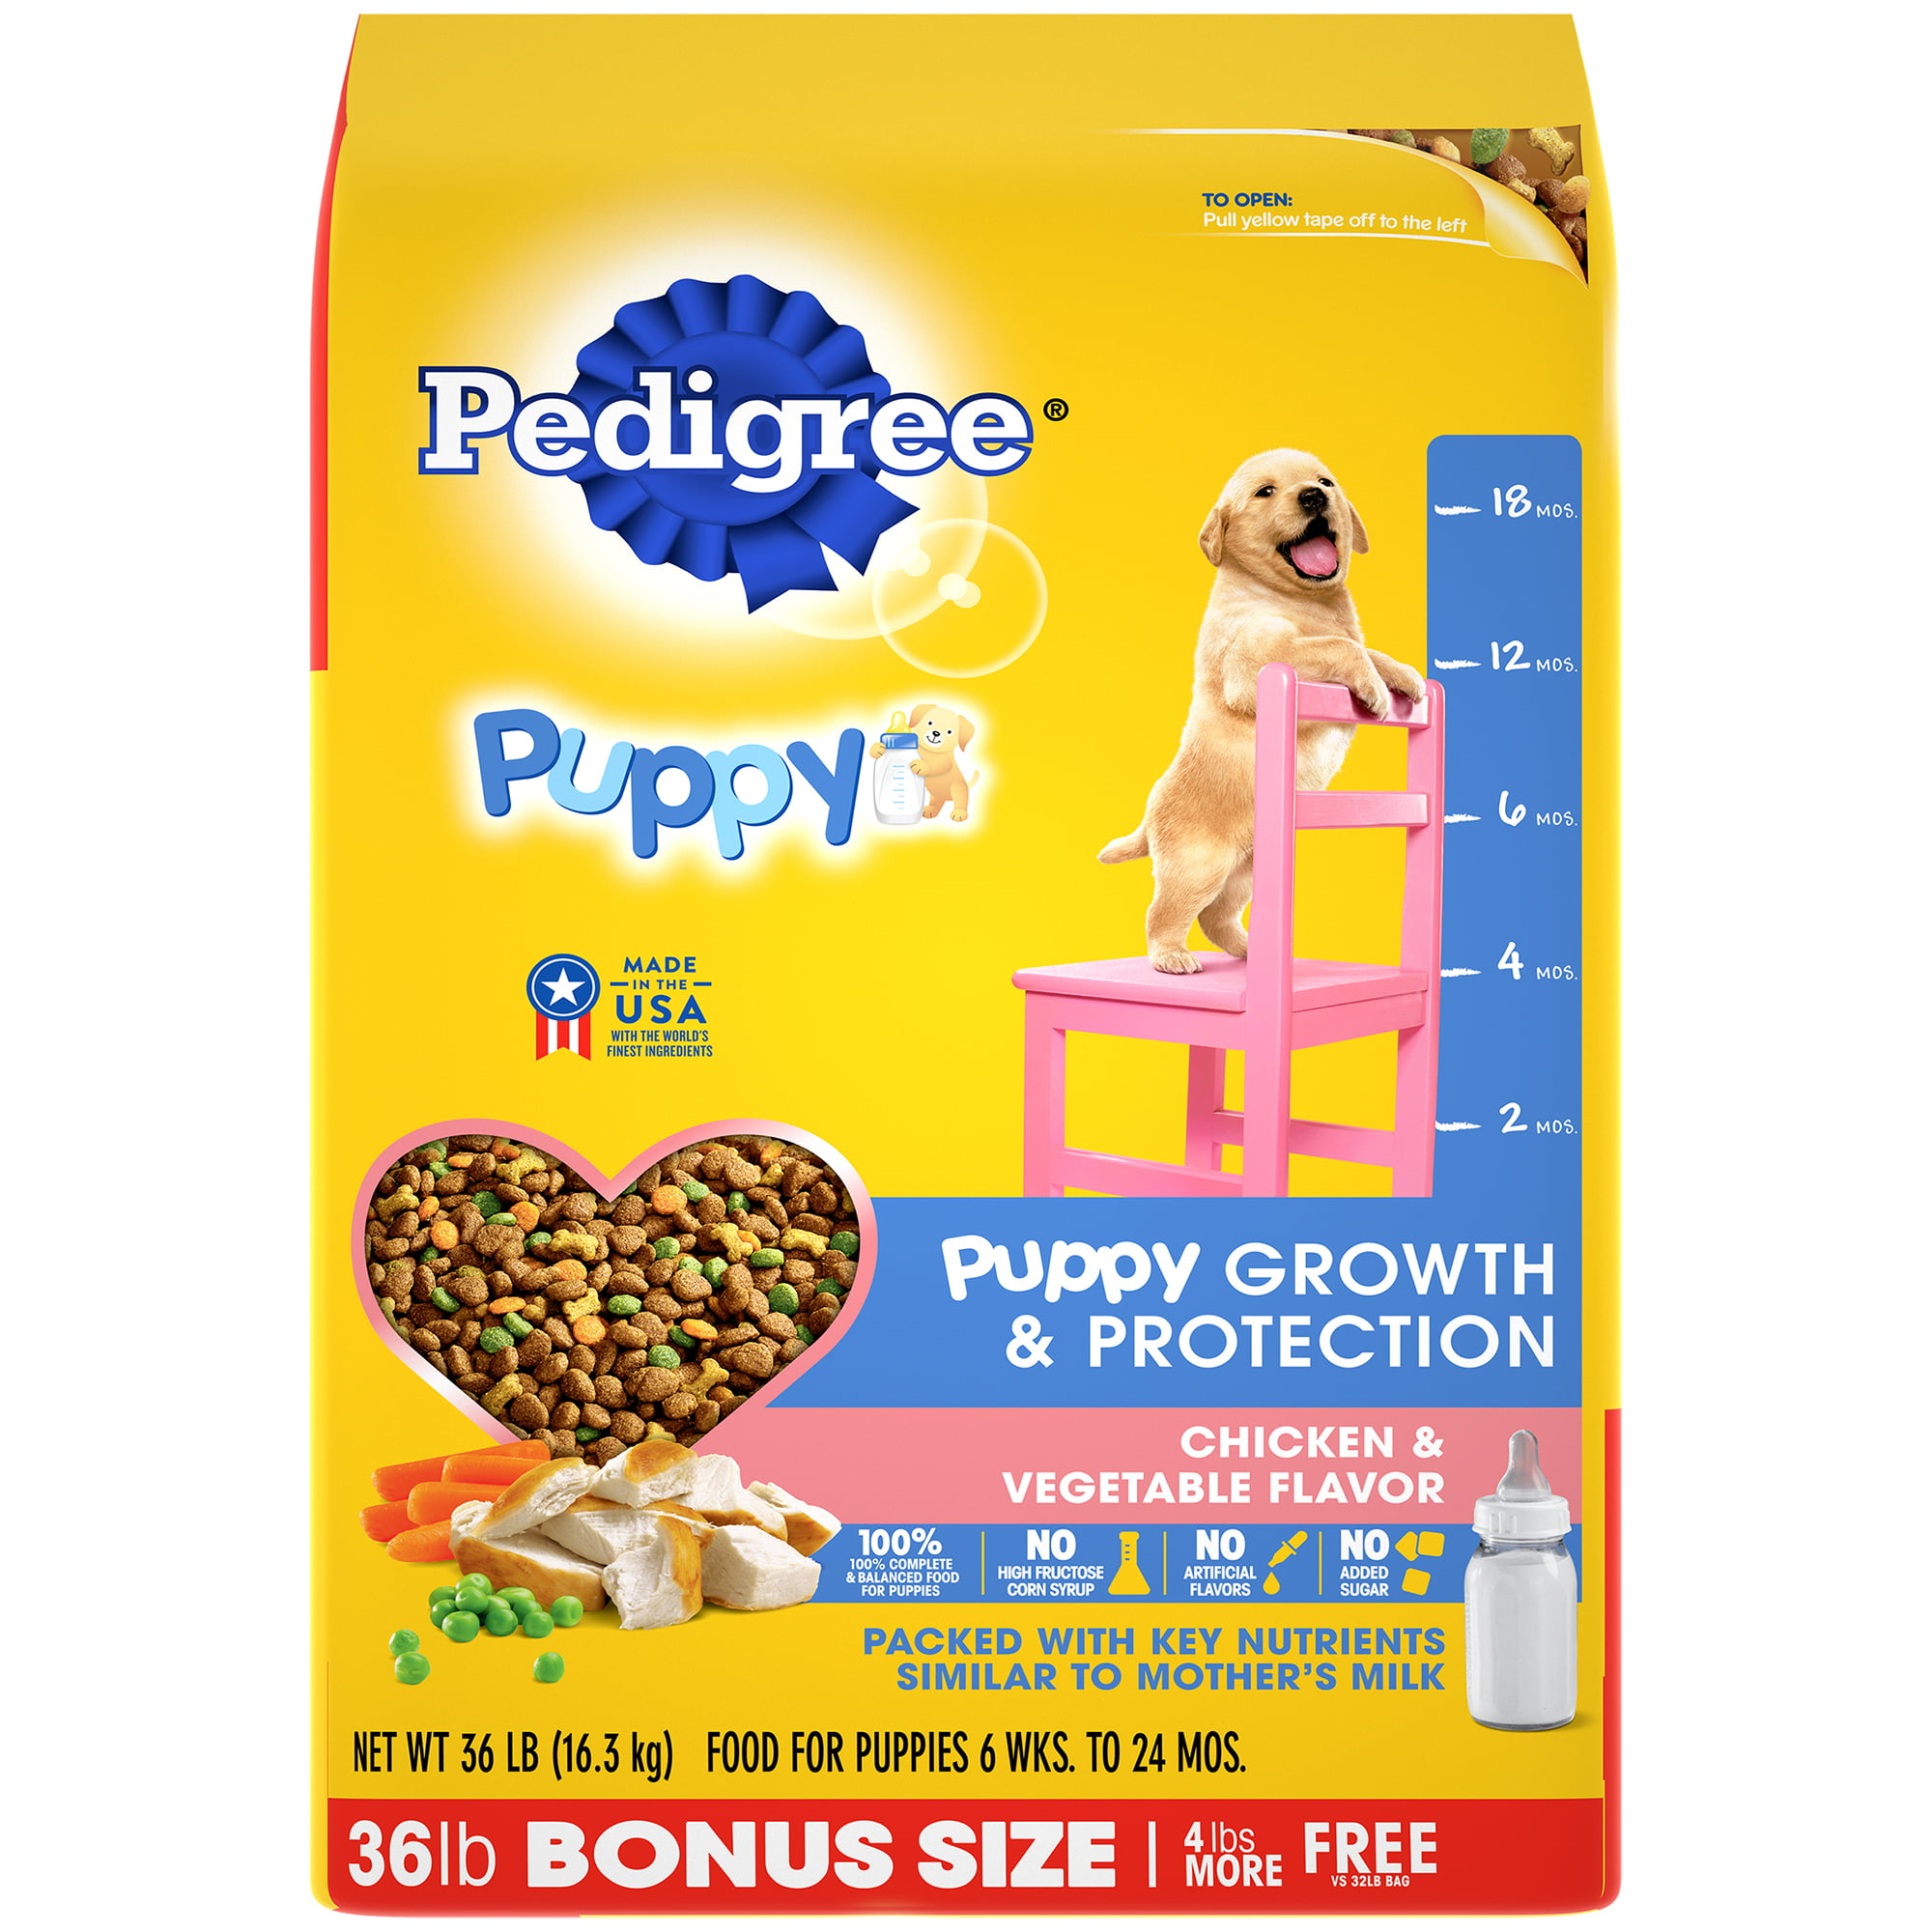 Pedigree Puppy Growth  Protection Dry Dog Food Chicken  Vegetable Flavor